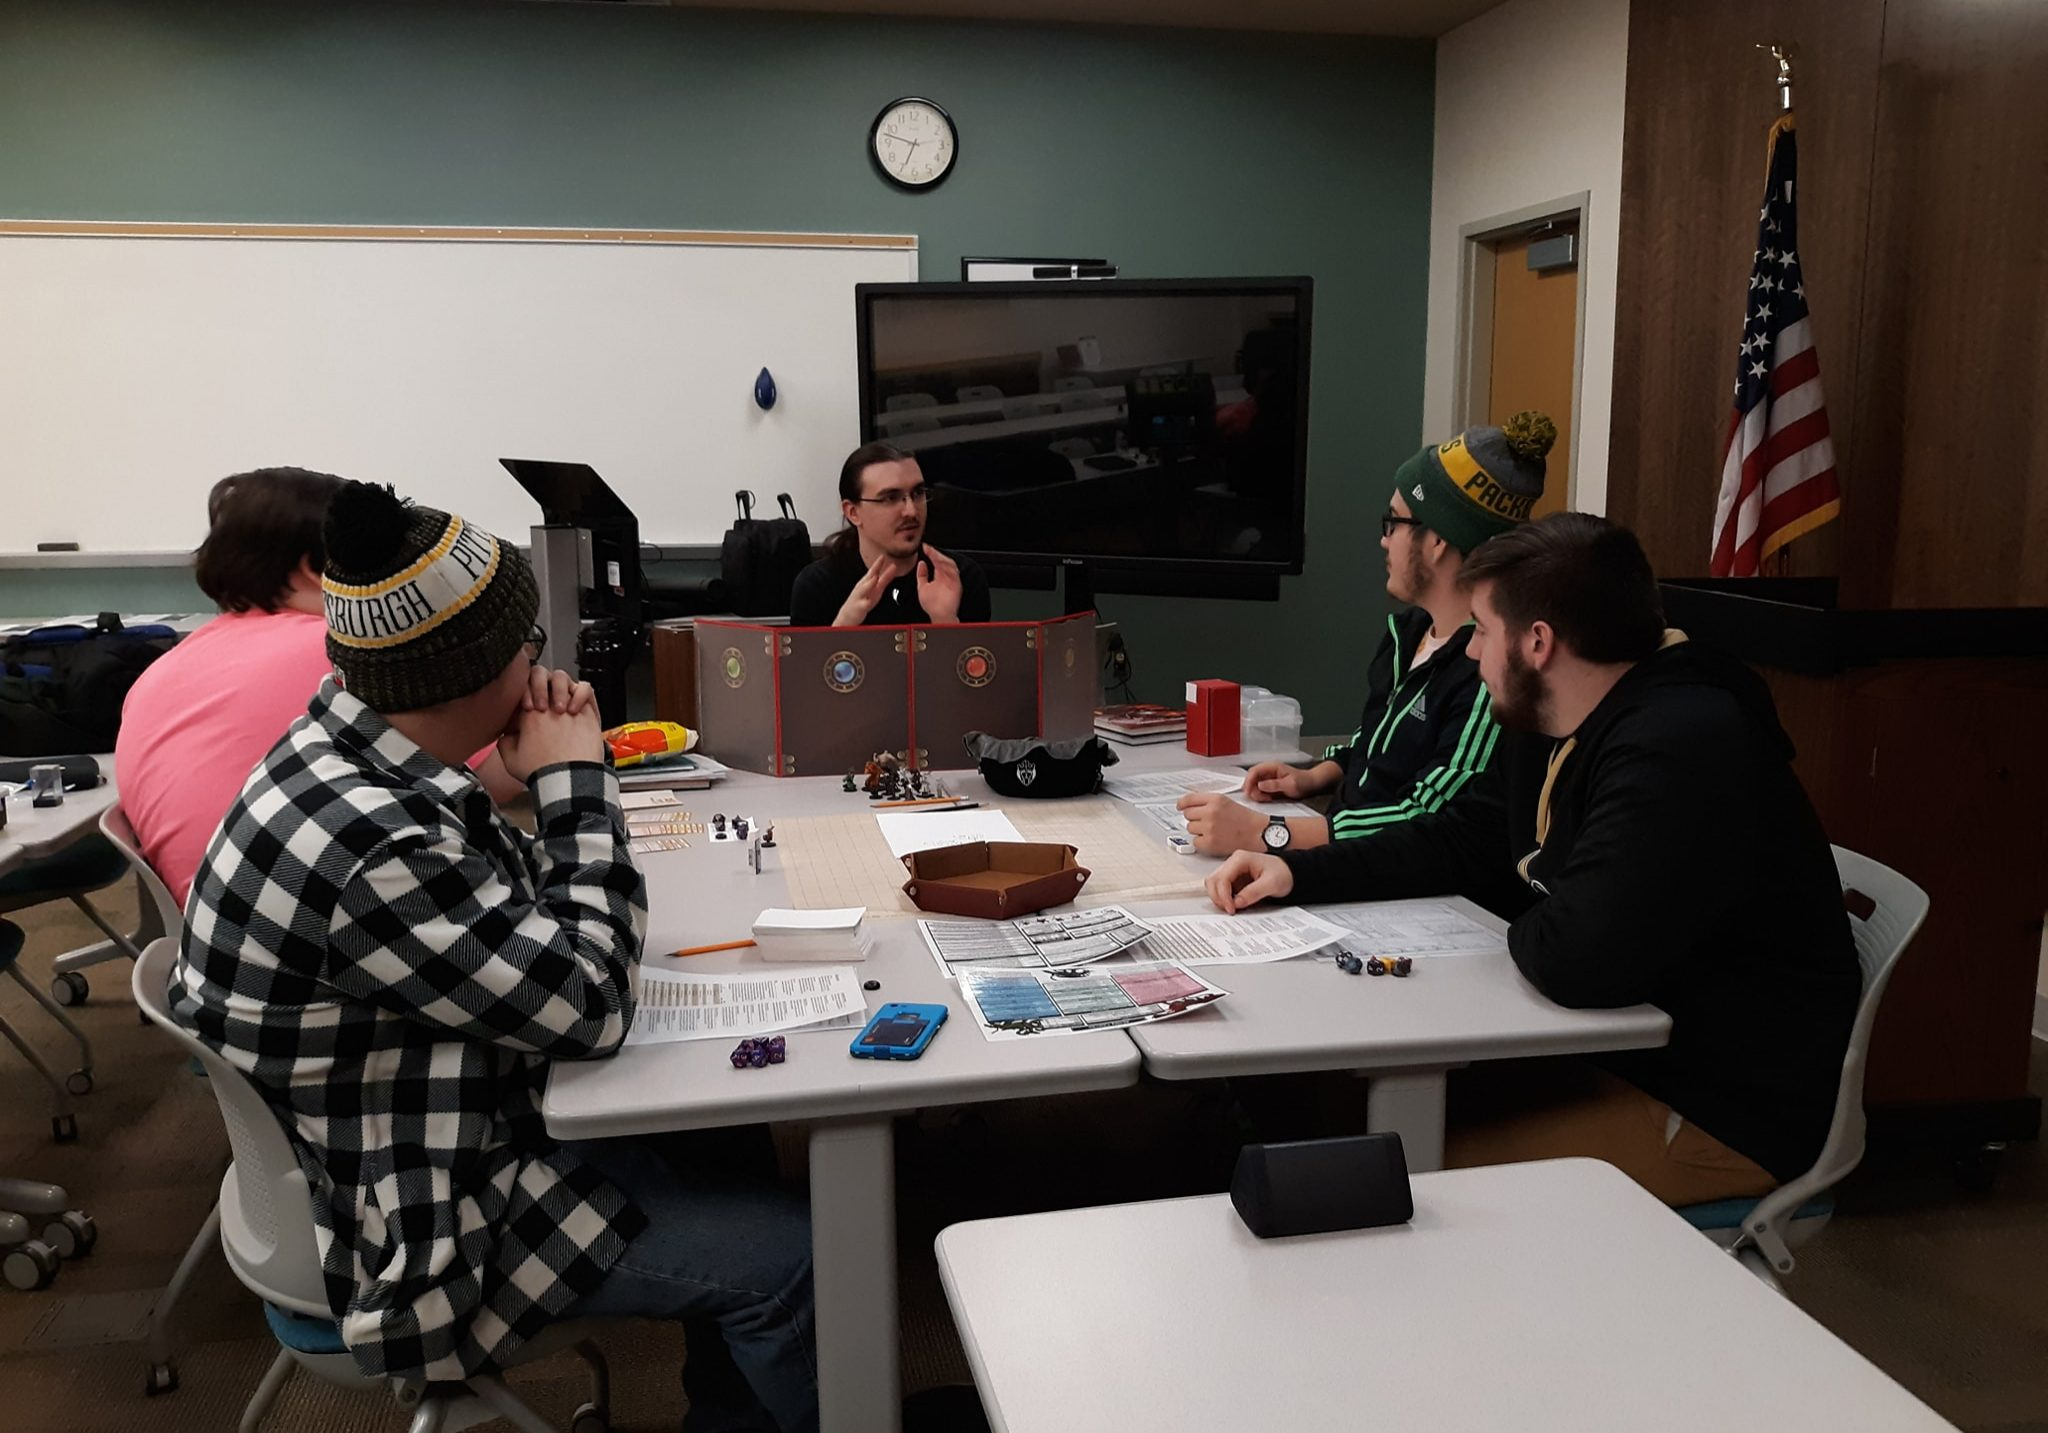 image of gamers guild meeting